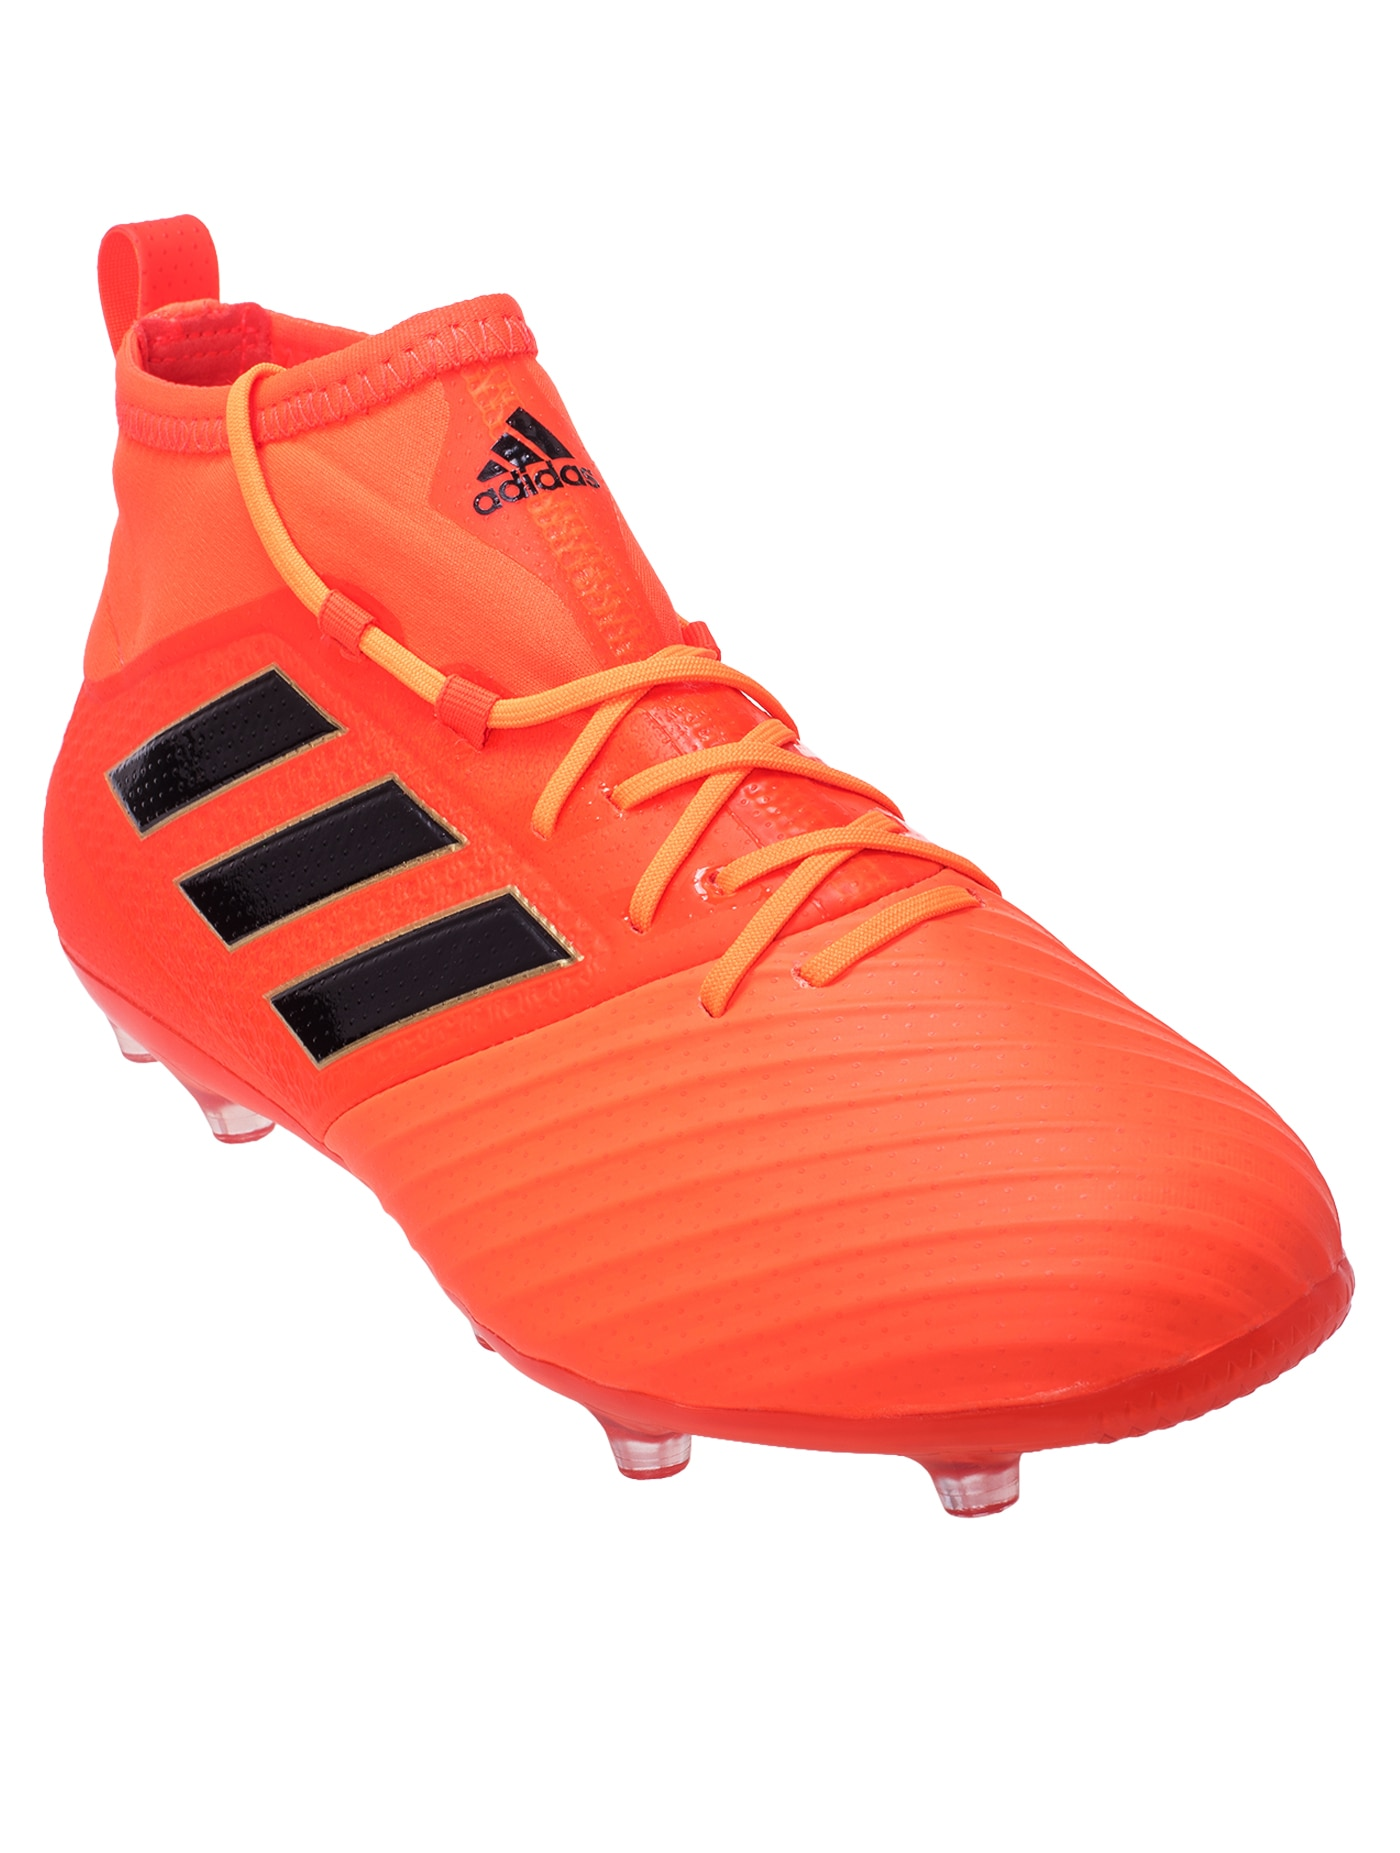 ADIDAS Men's Football Shoes Ace 17.2 FG BY2190 Size UK